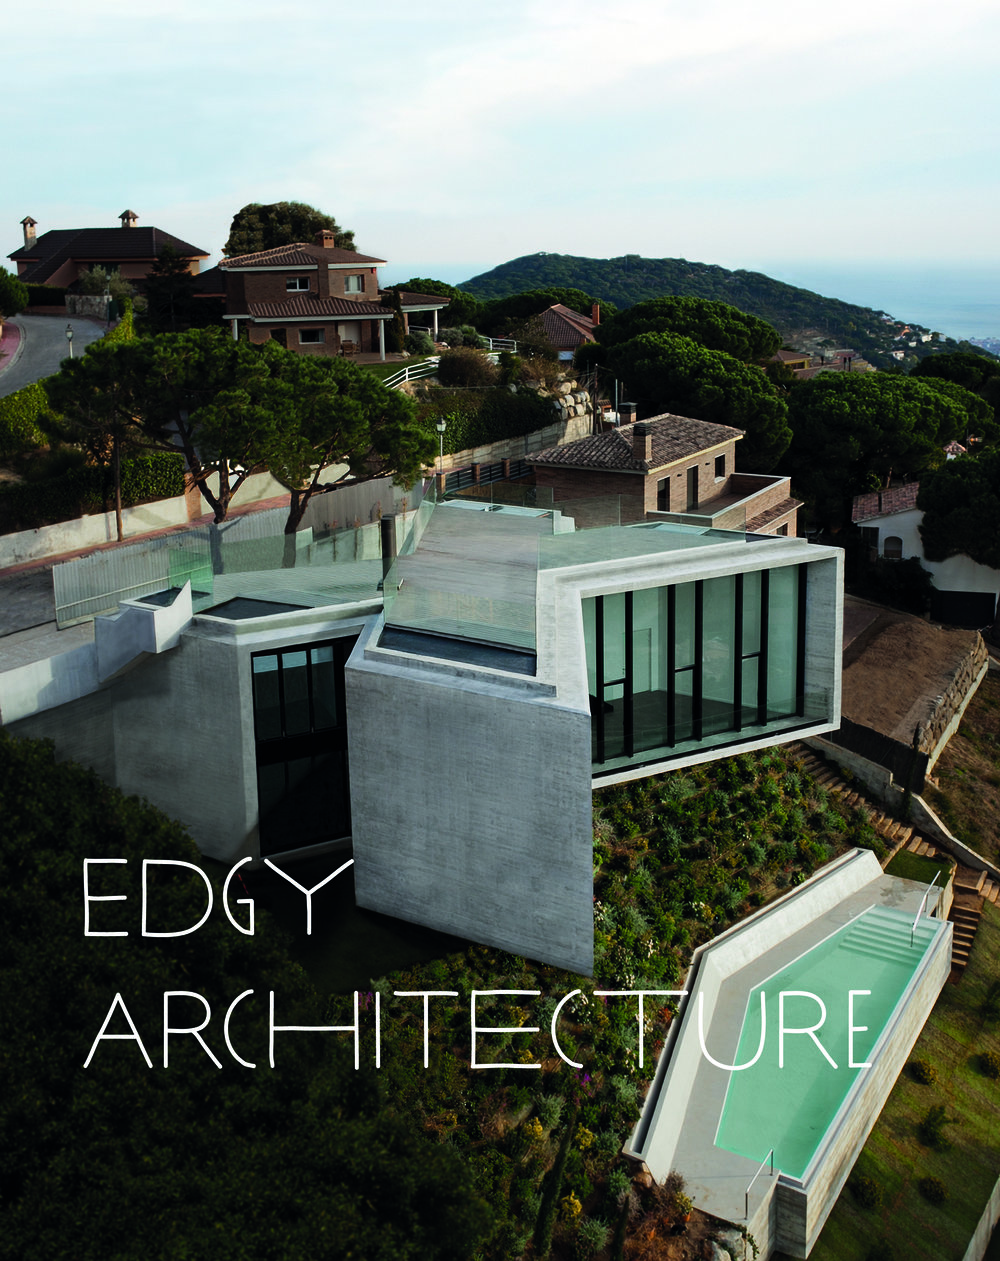 Edgy Architecture front cover.jpg